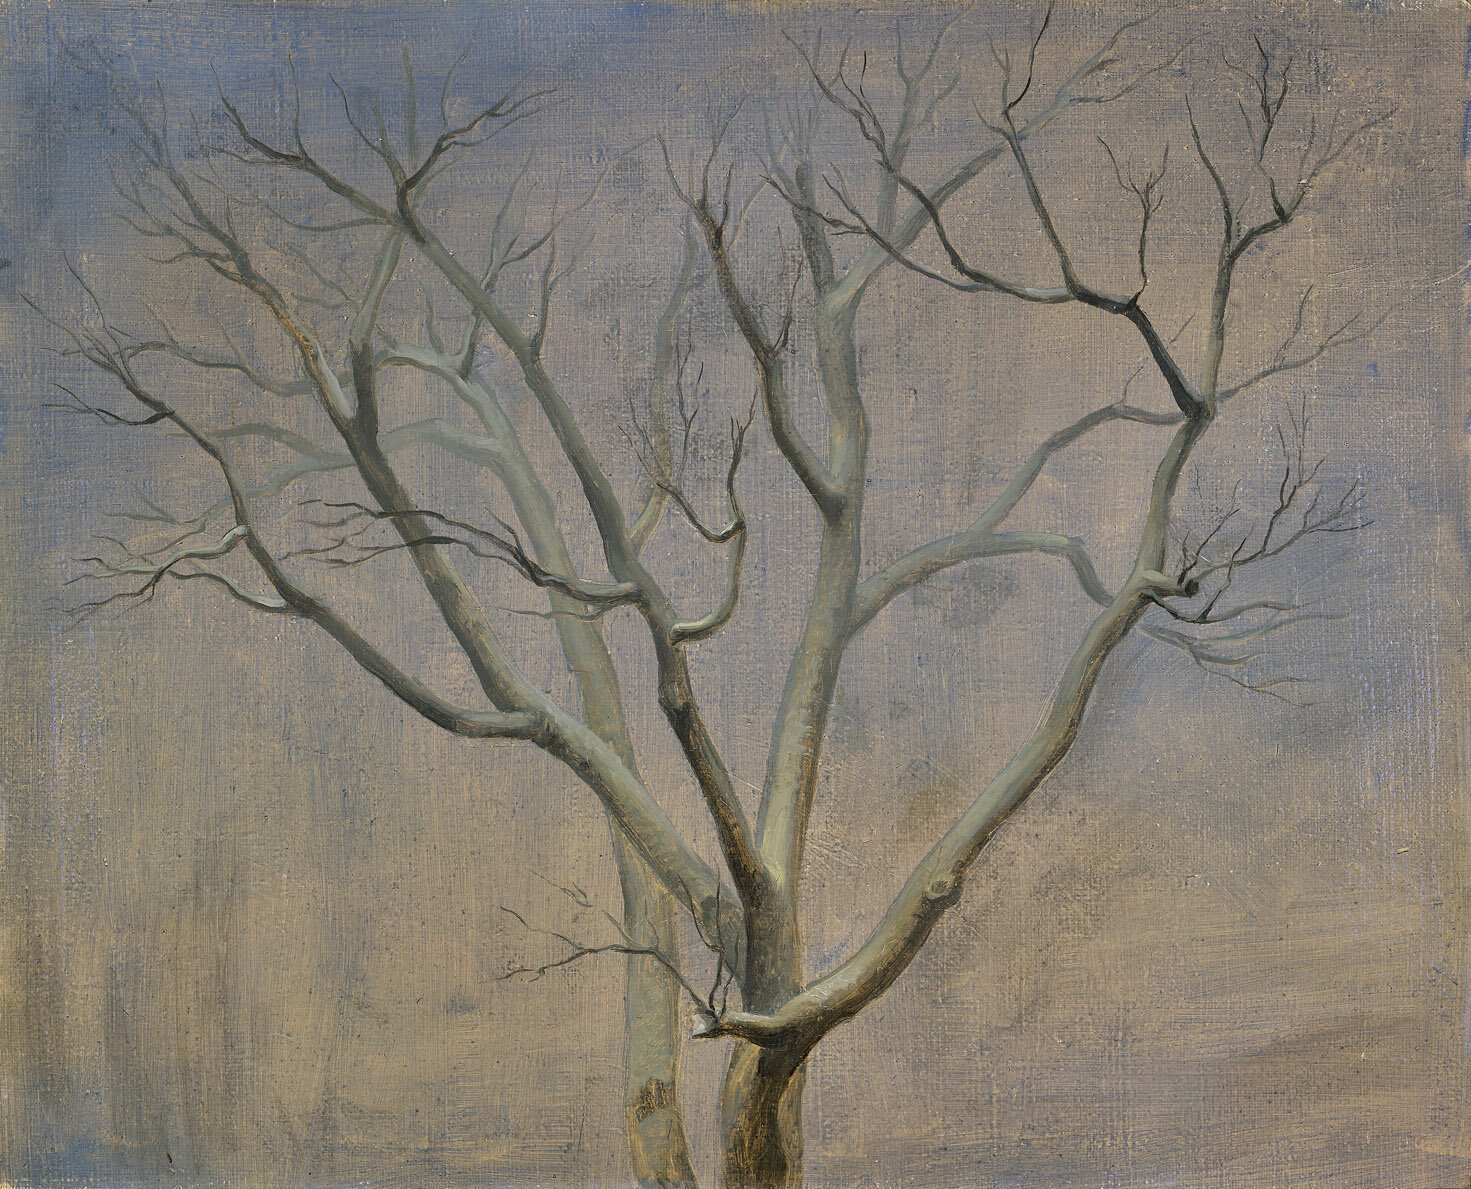 The Tree , 1948  oil on canvas 16 x 20 inches; 40.6 x 50.8 centimeters